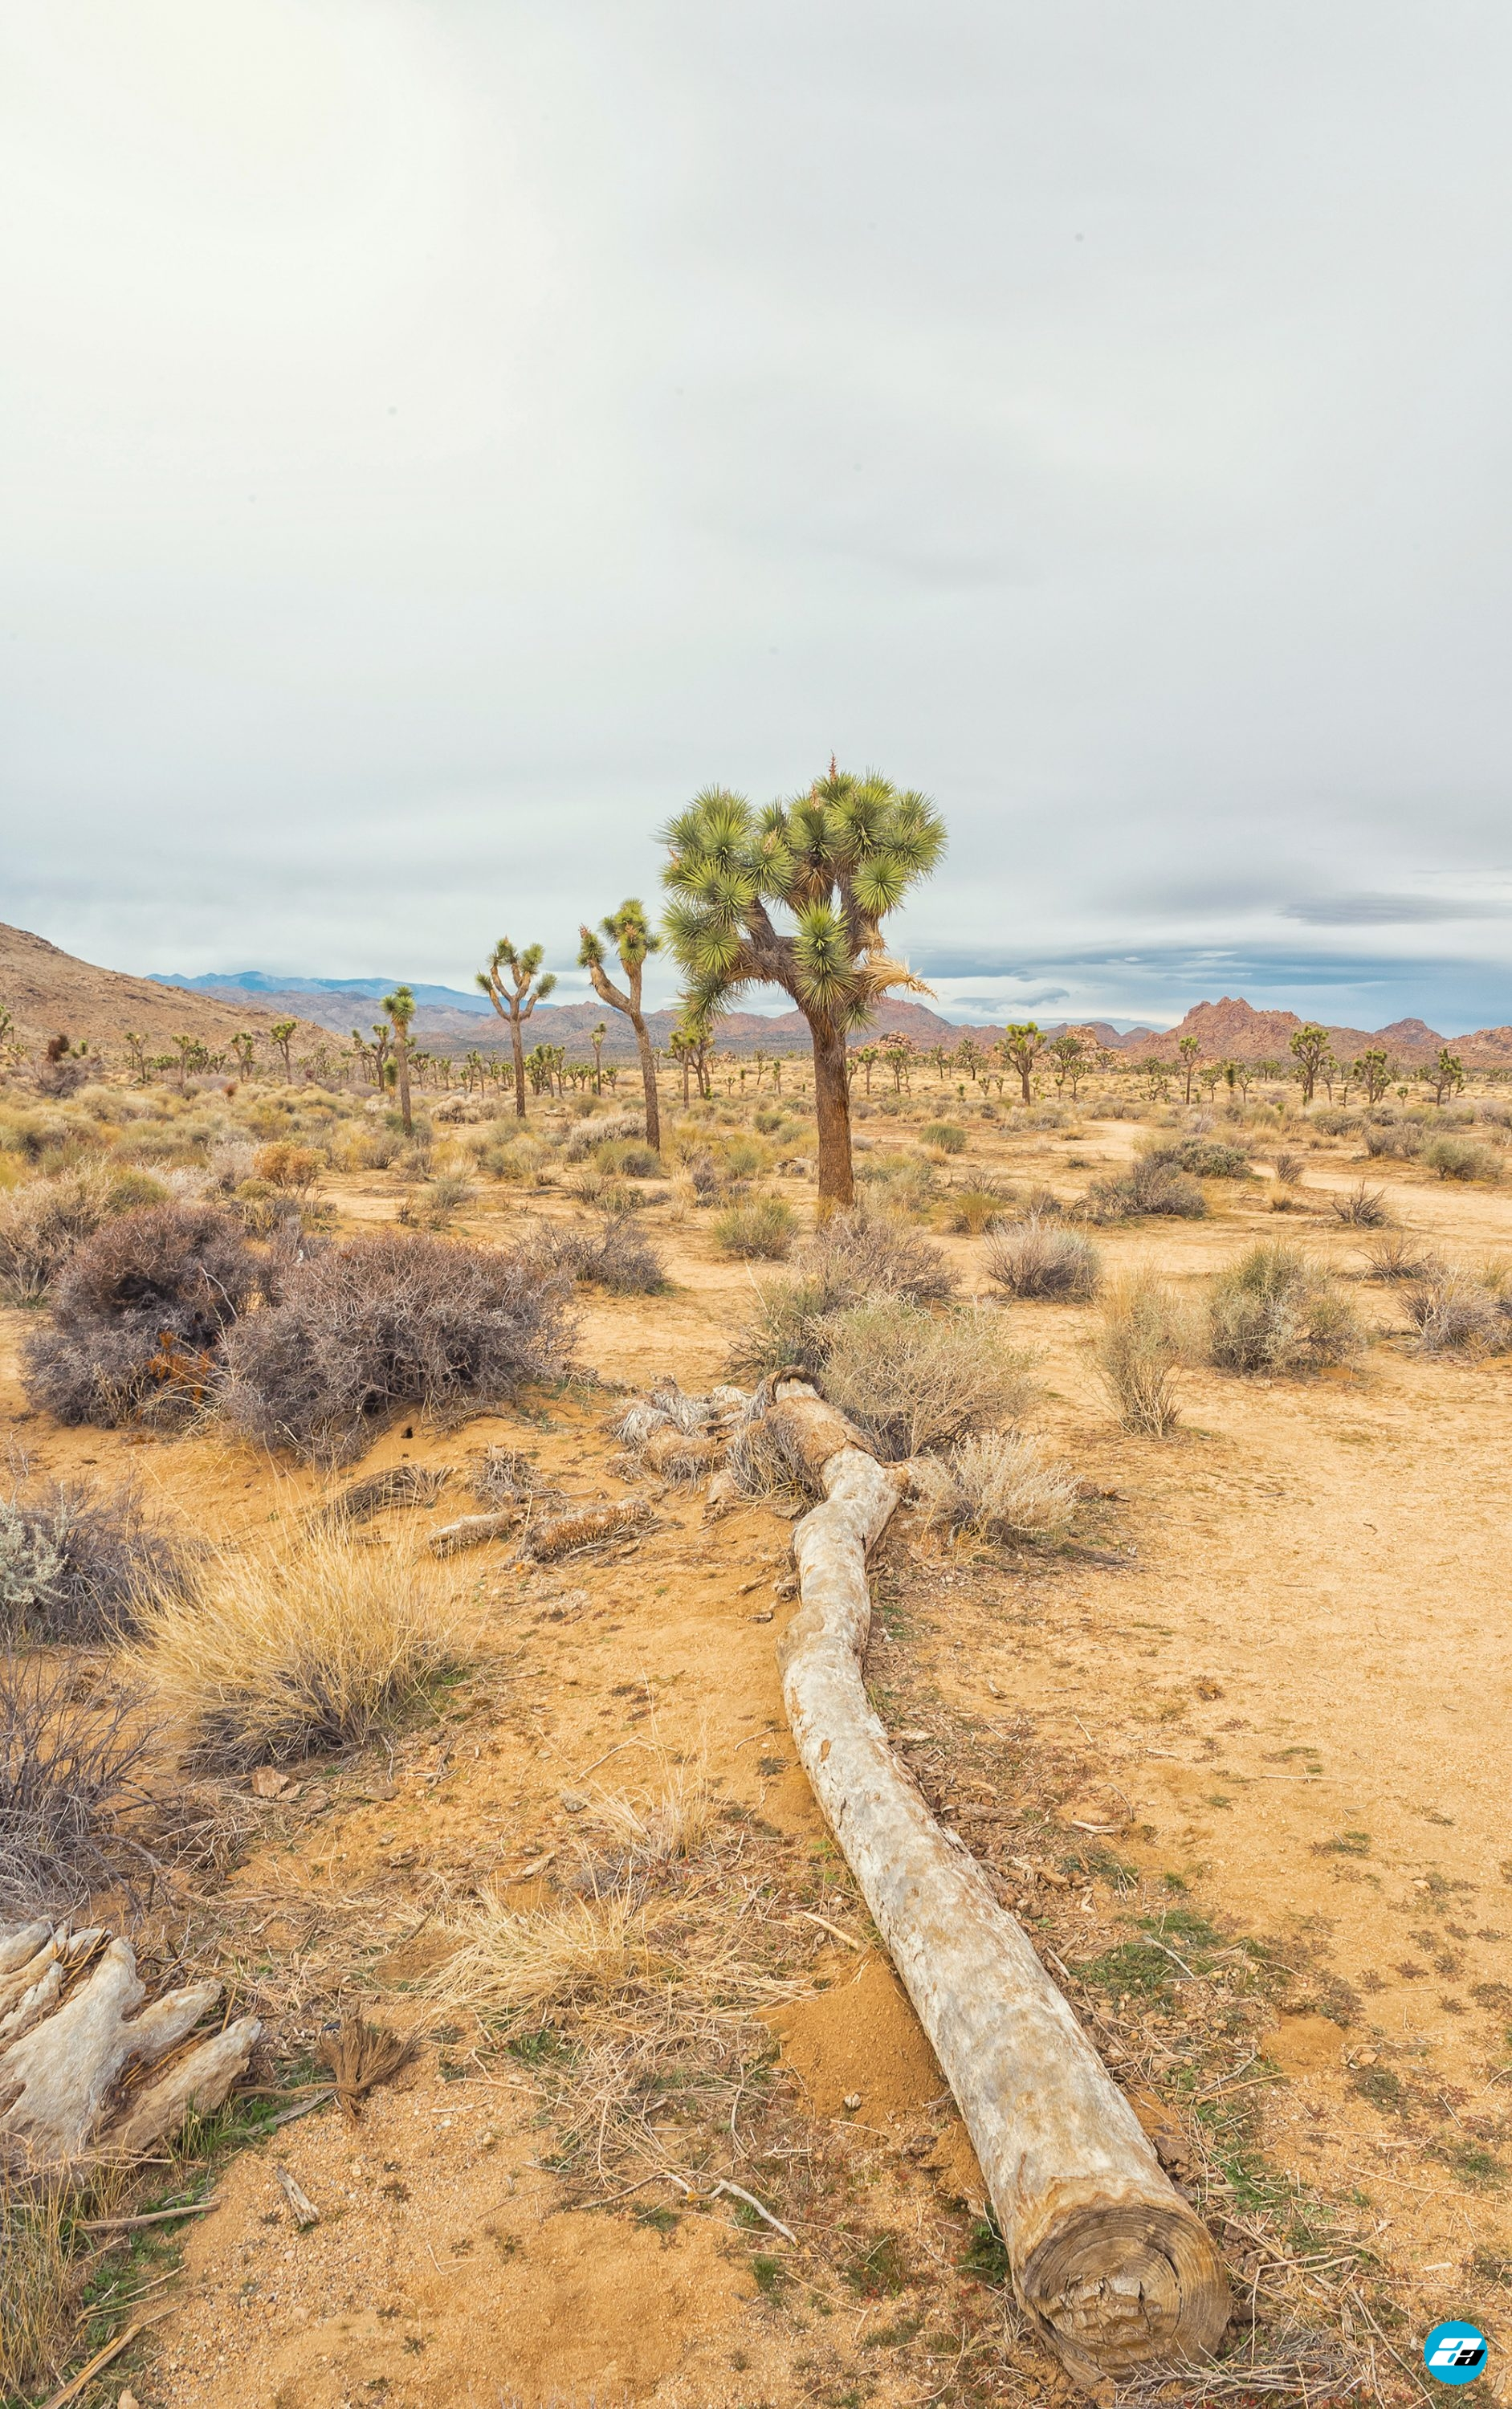 Joshua Tree National Park, California, USA. California Attraction & Travel.